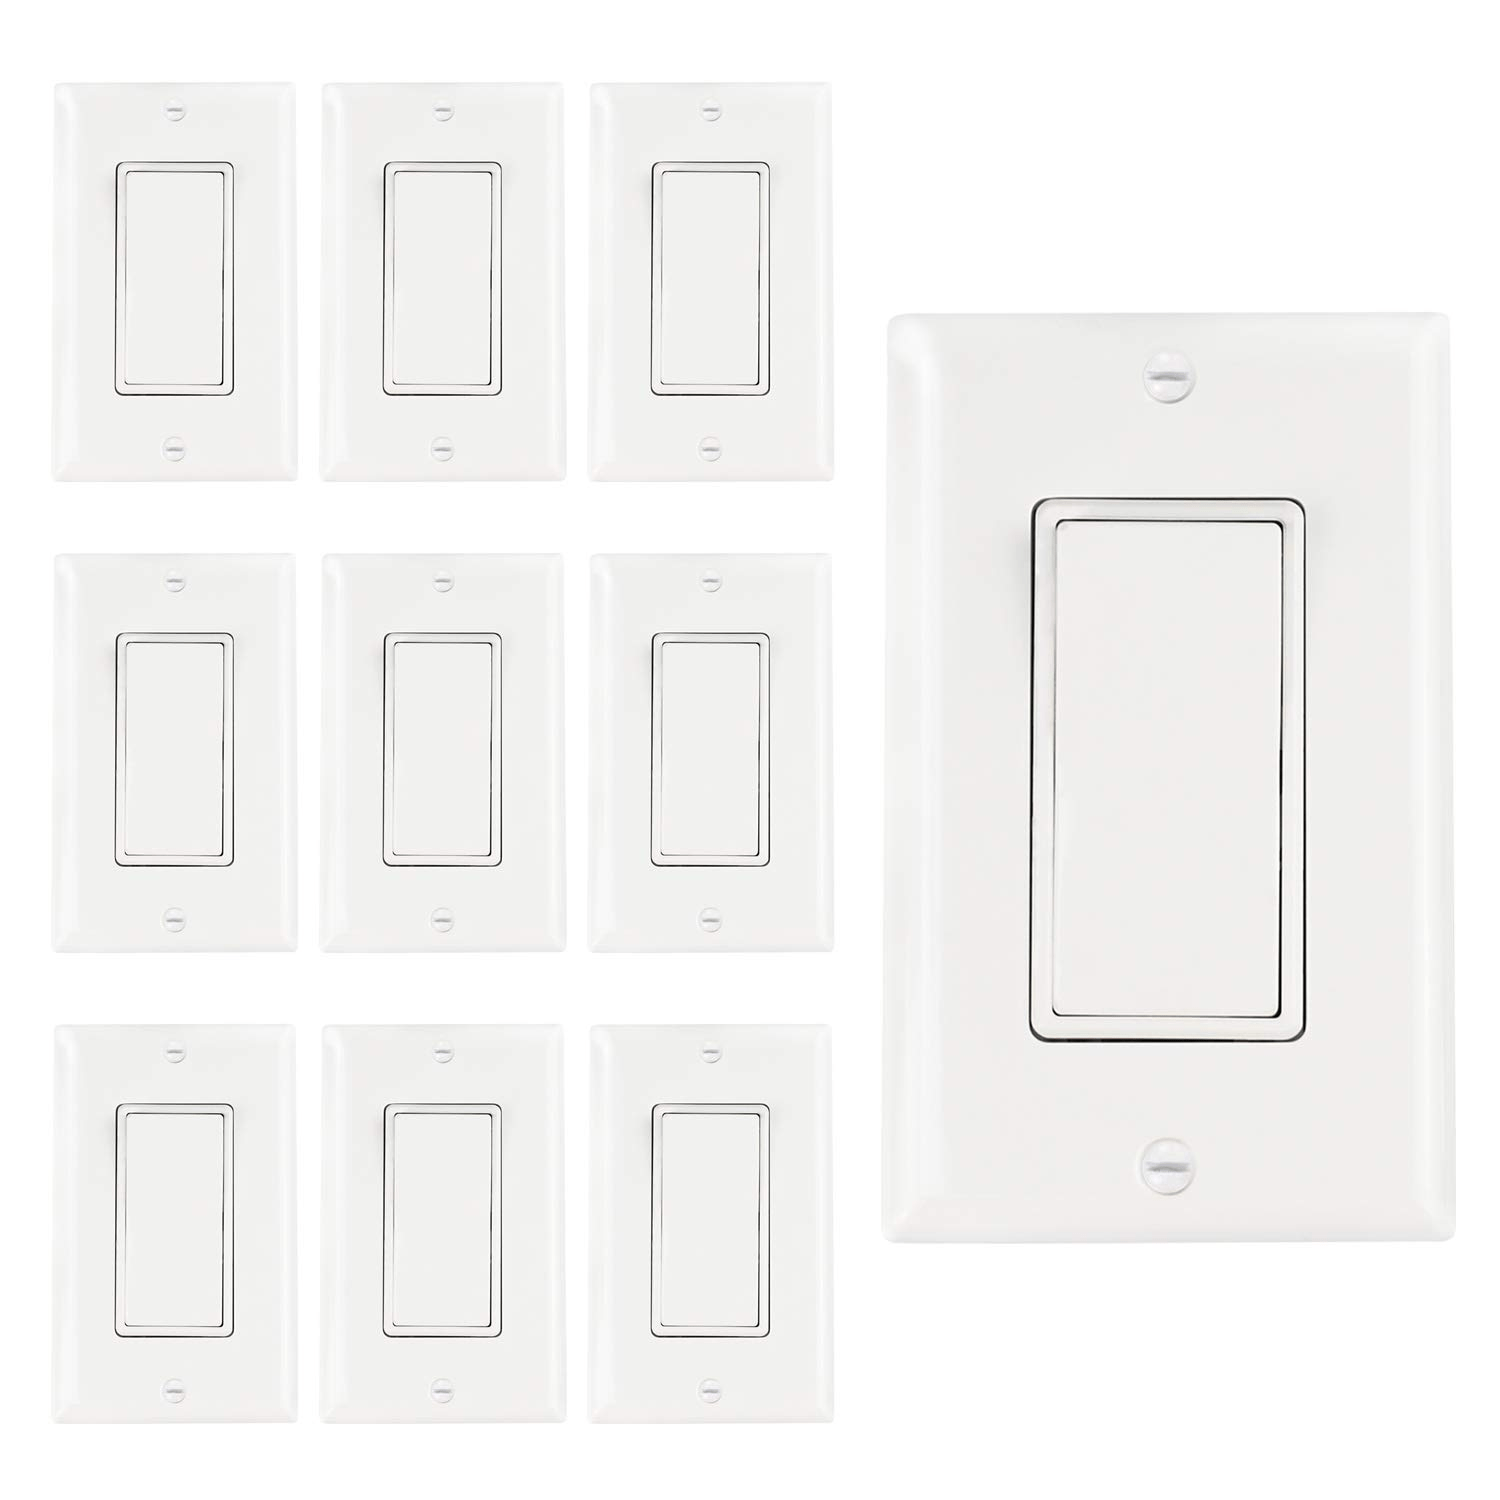 Abbotech Light Switch With Wall Plates Included Decorative